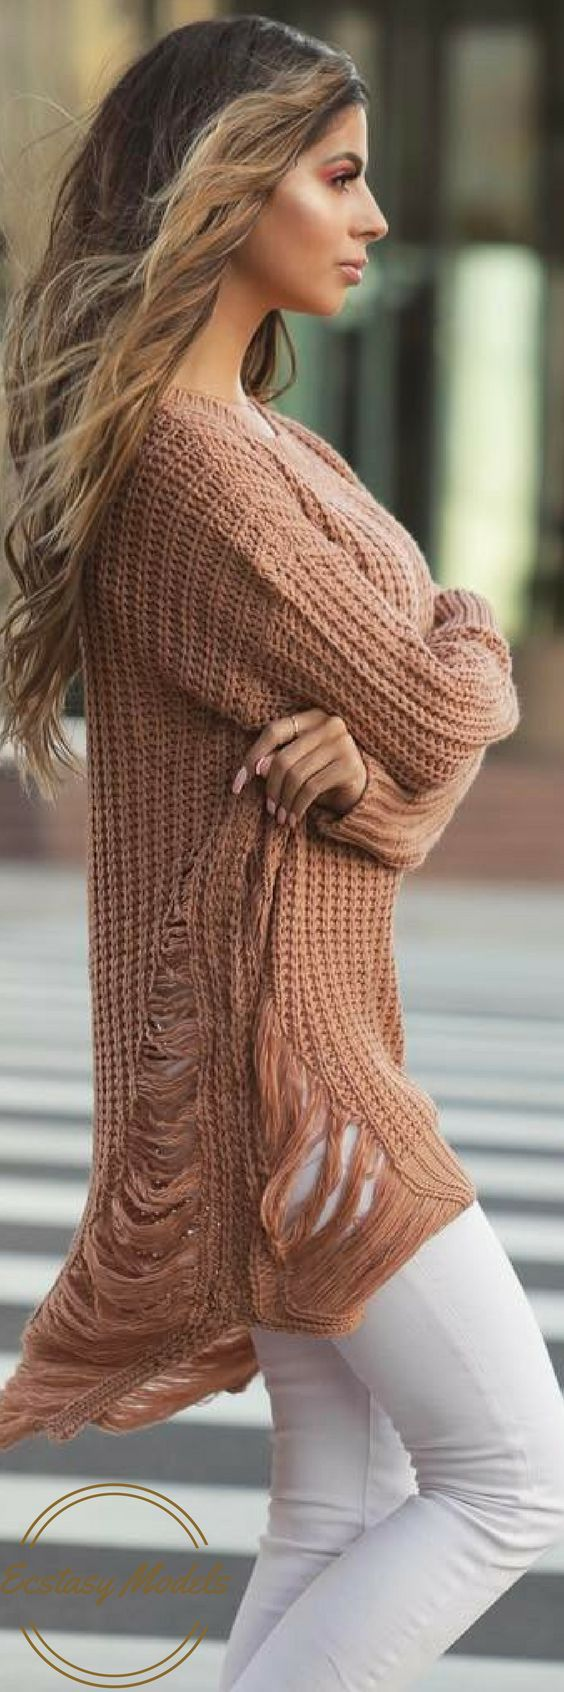 Windsor Store Knit Sweater // Fashion Look by Laura Lee: